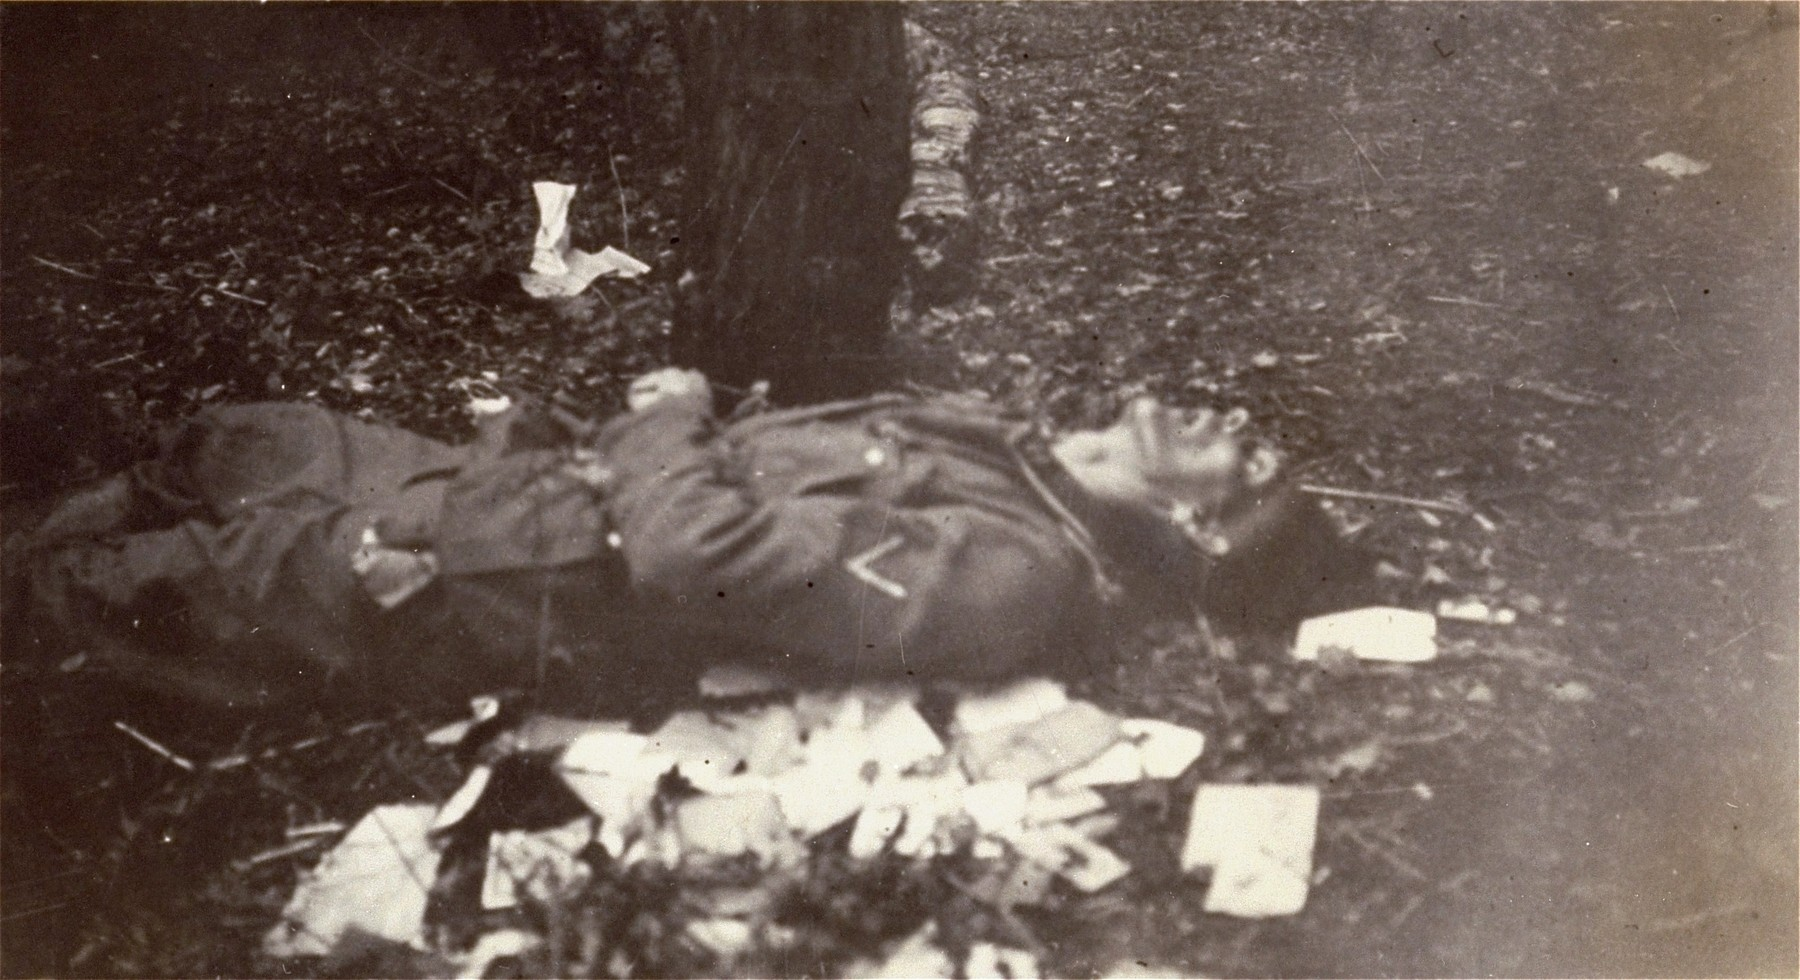 The body of an SS guard in the newly liberated Dachau concentration camp.